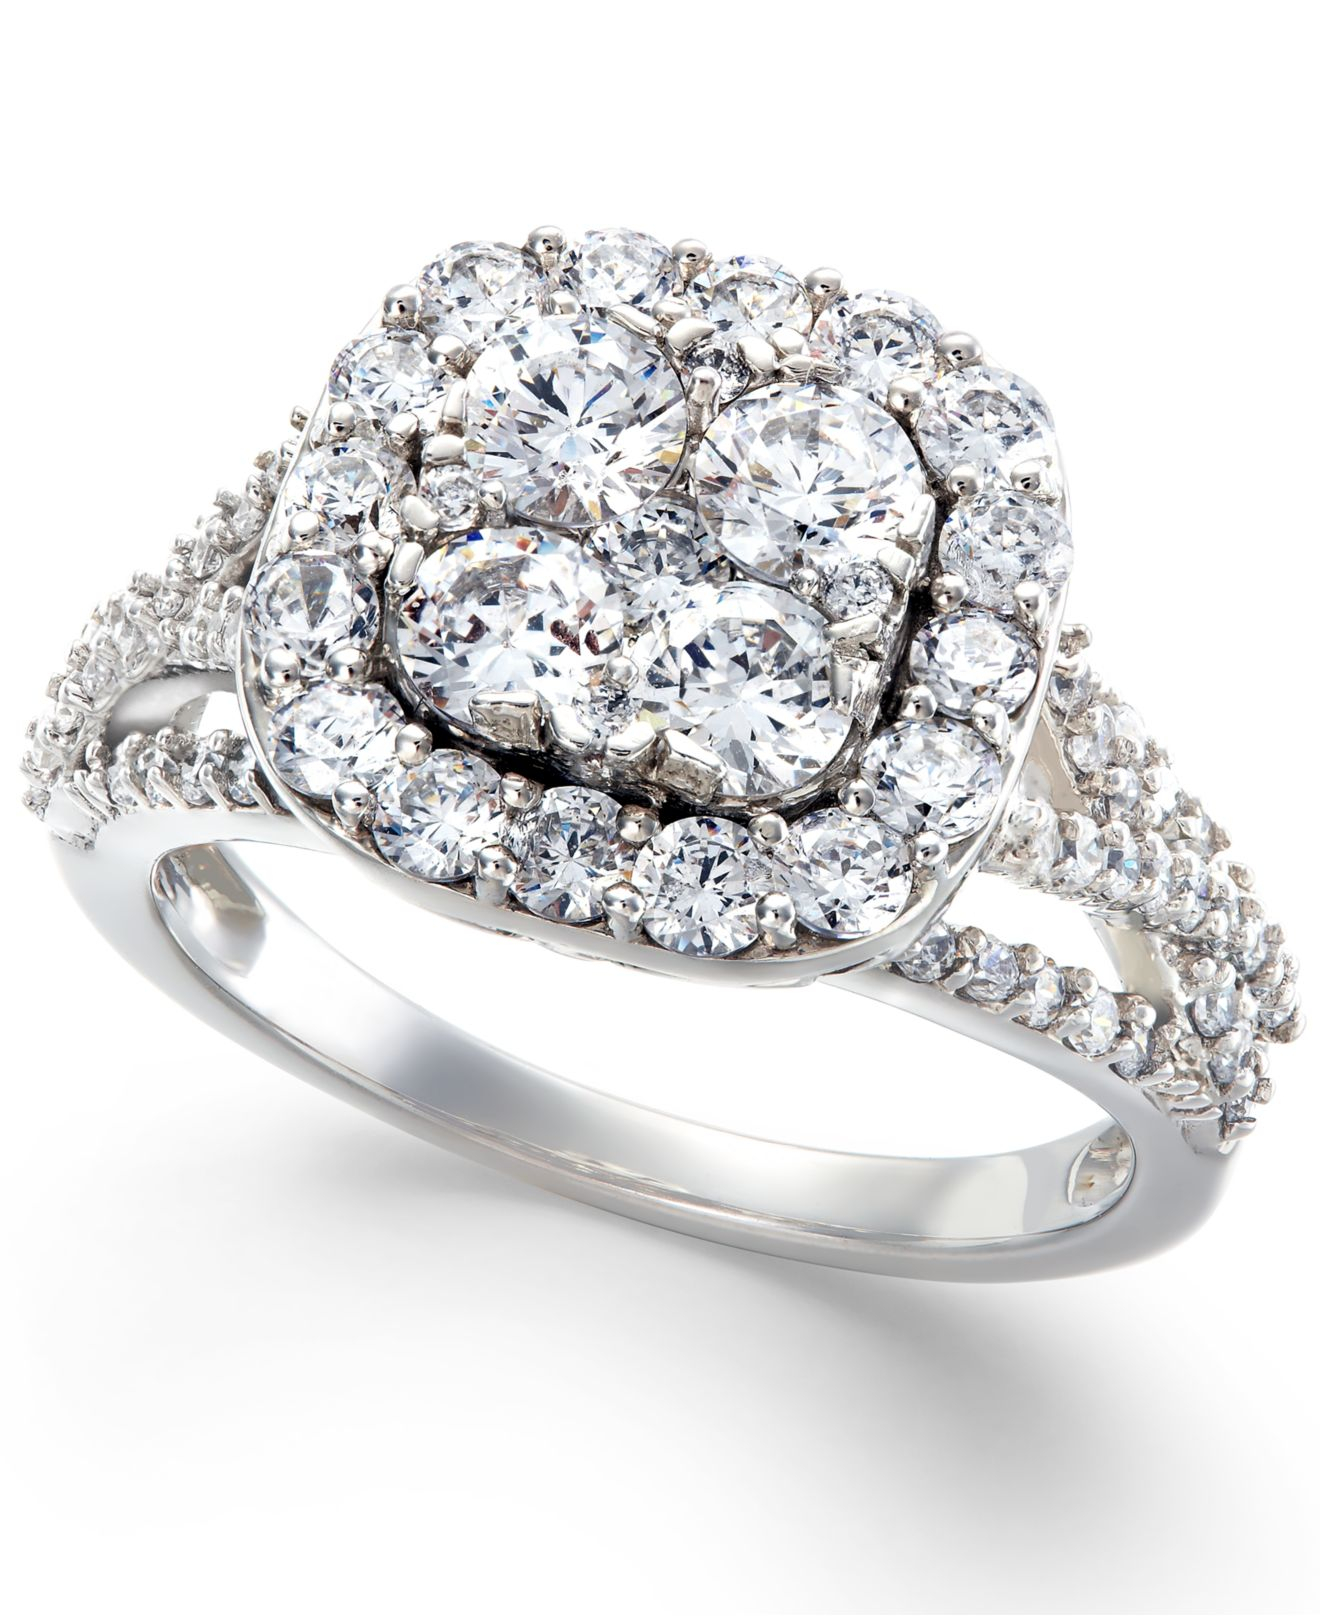 Macy s Diamond Halo Cluster Engagement Ring In 14k White Gold 2 Ct T w